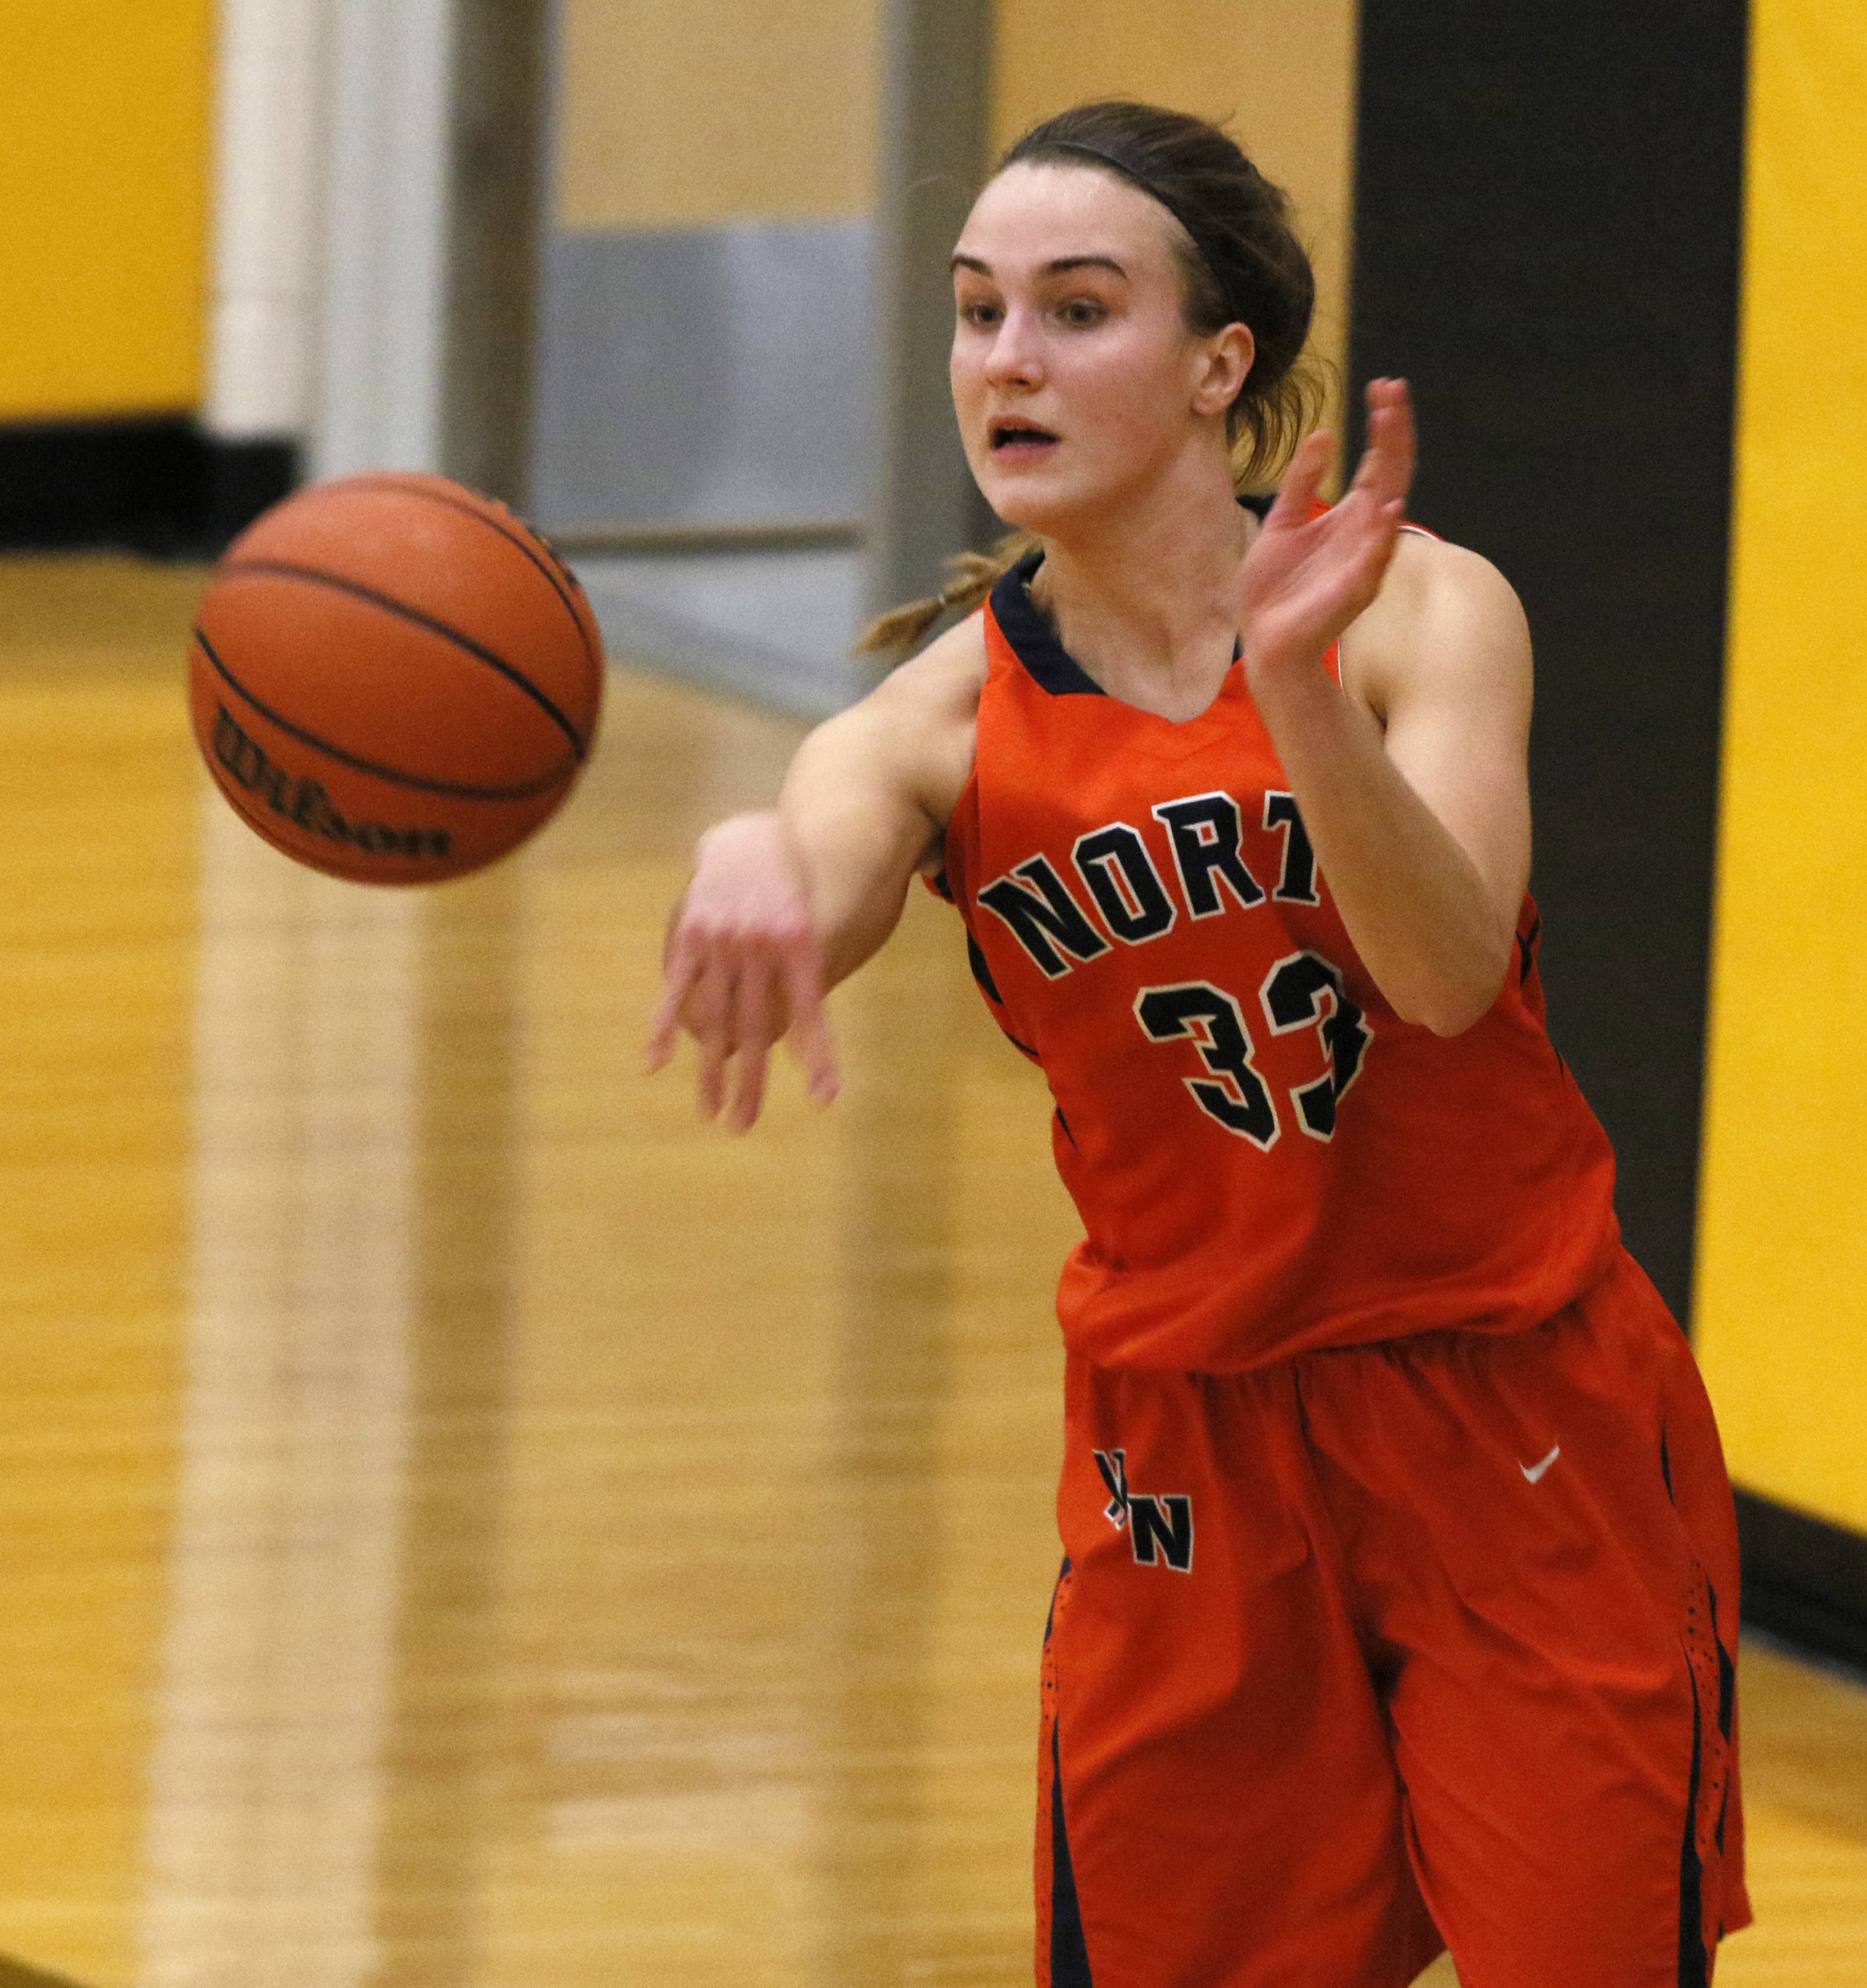 Naperville Central's Greta Kampschroeder passes the ball in bounds against Metea Valley.